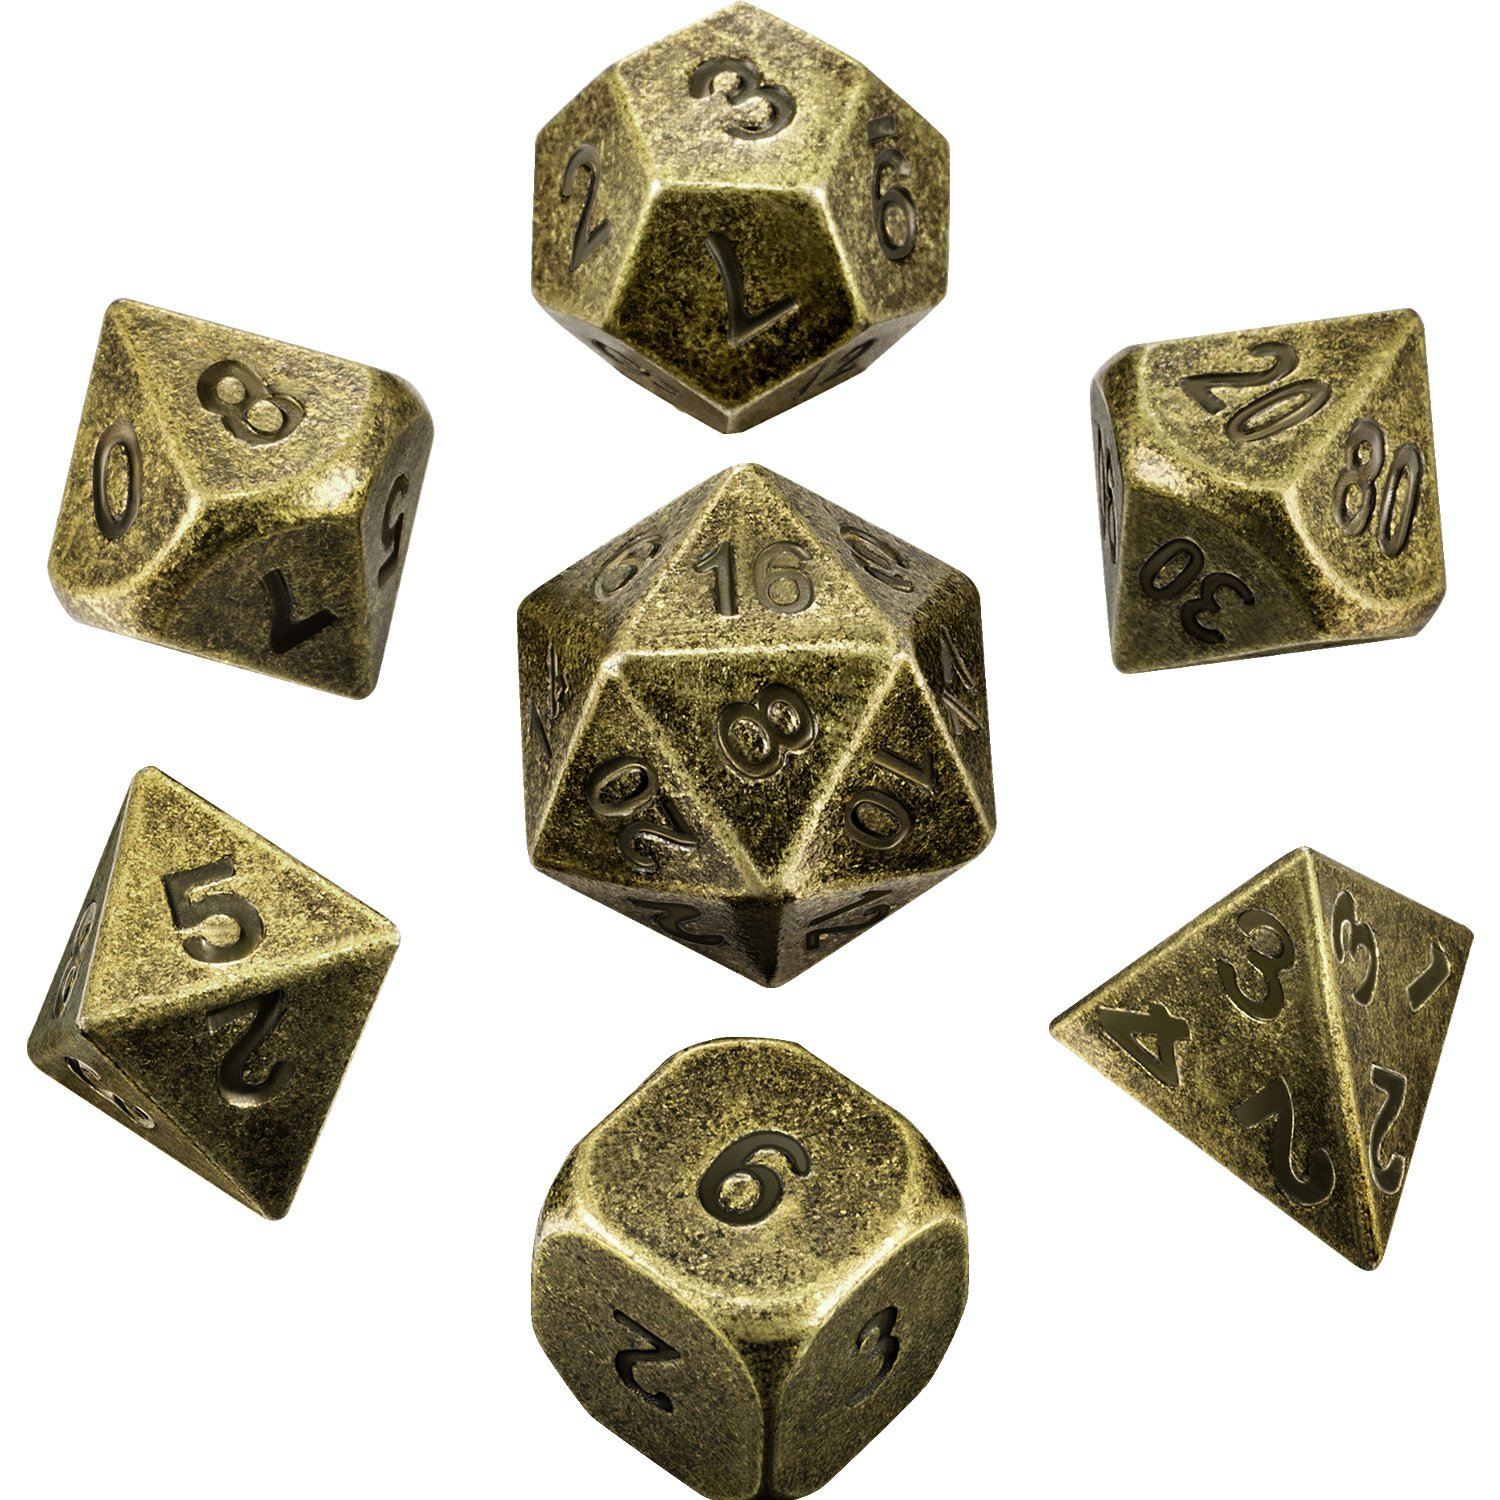 Hestya 7 Pieces Metal Dices DND Polyhedral Solid Metal D&D Dice Game Dice with Random Numbers and Velvet Storage Bags for Role Playing Game Dungeons and Dragons Game, Math Teaching (Bronze Copper)